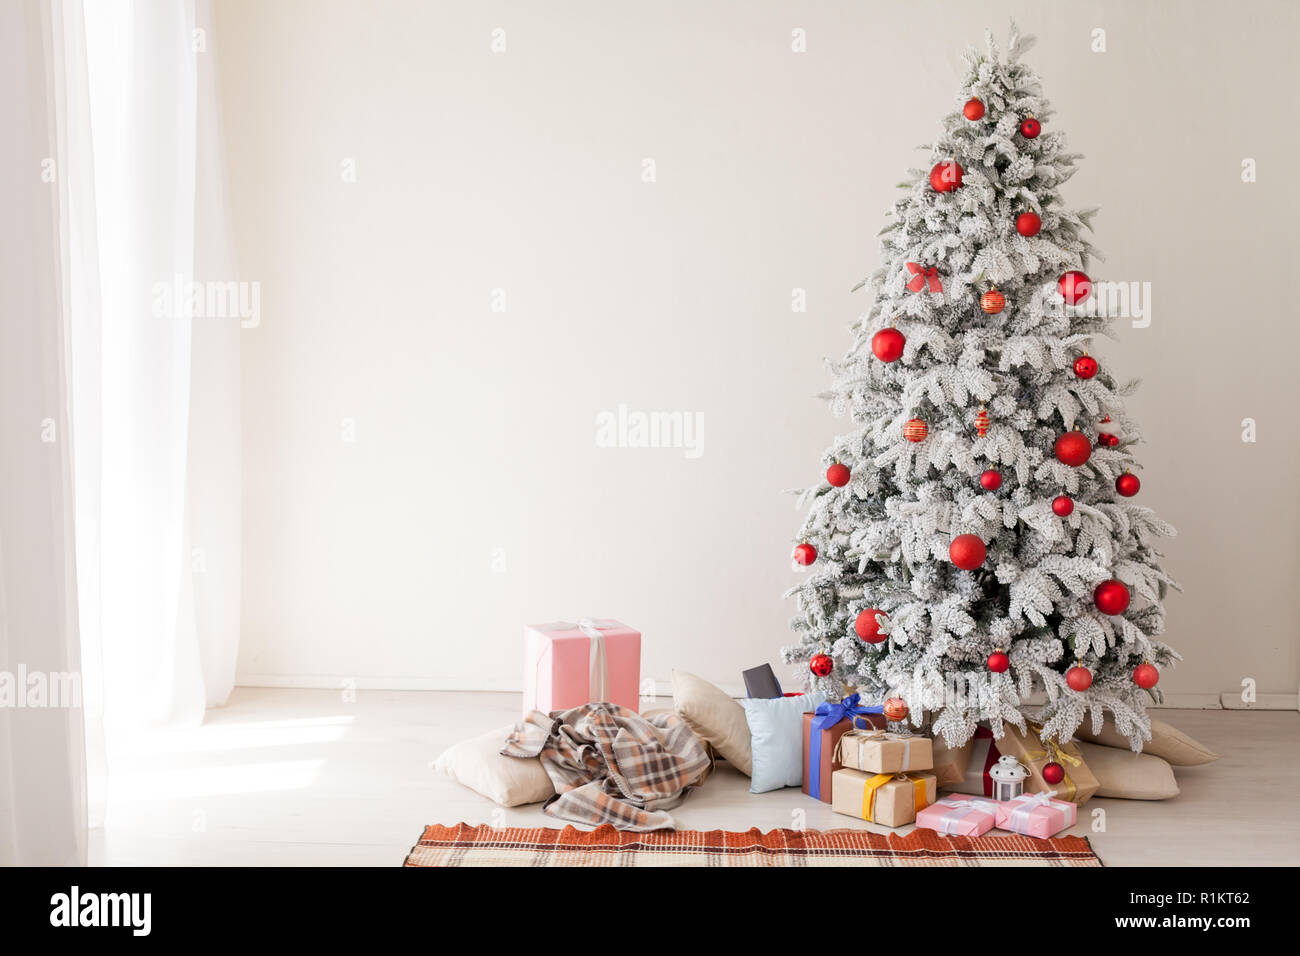 Christmas Holidays Pictures.New Year Winter Christmas Holidays Christmas Tree Background